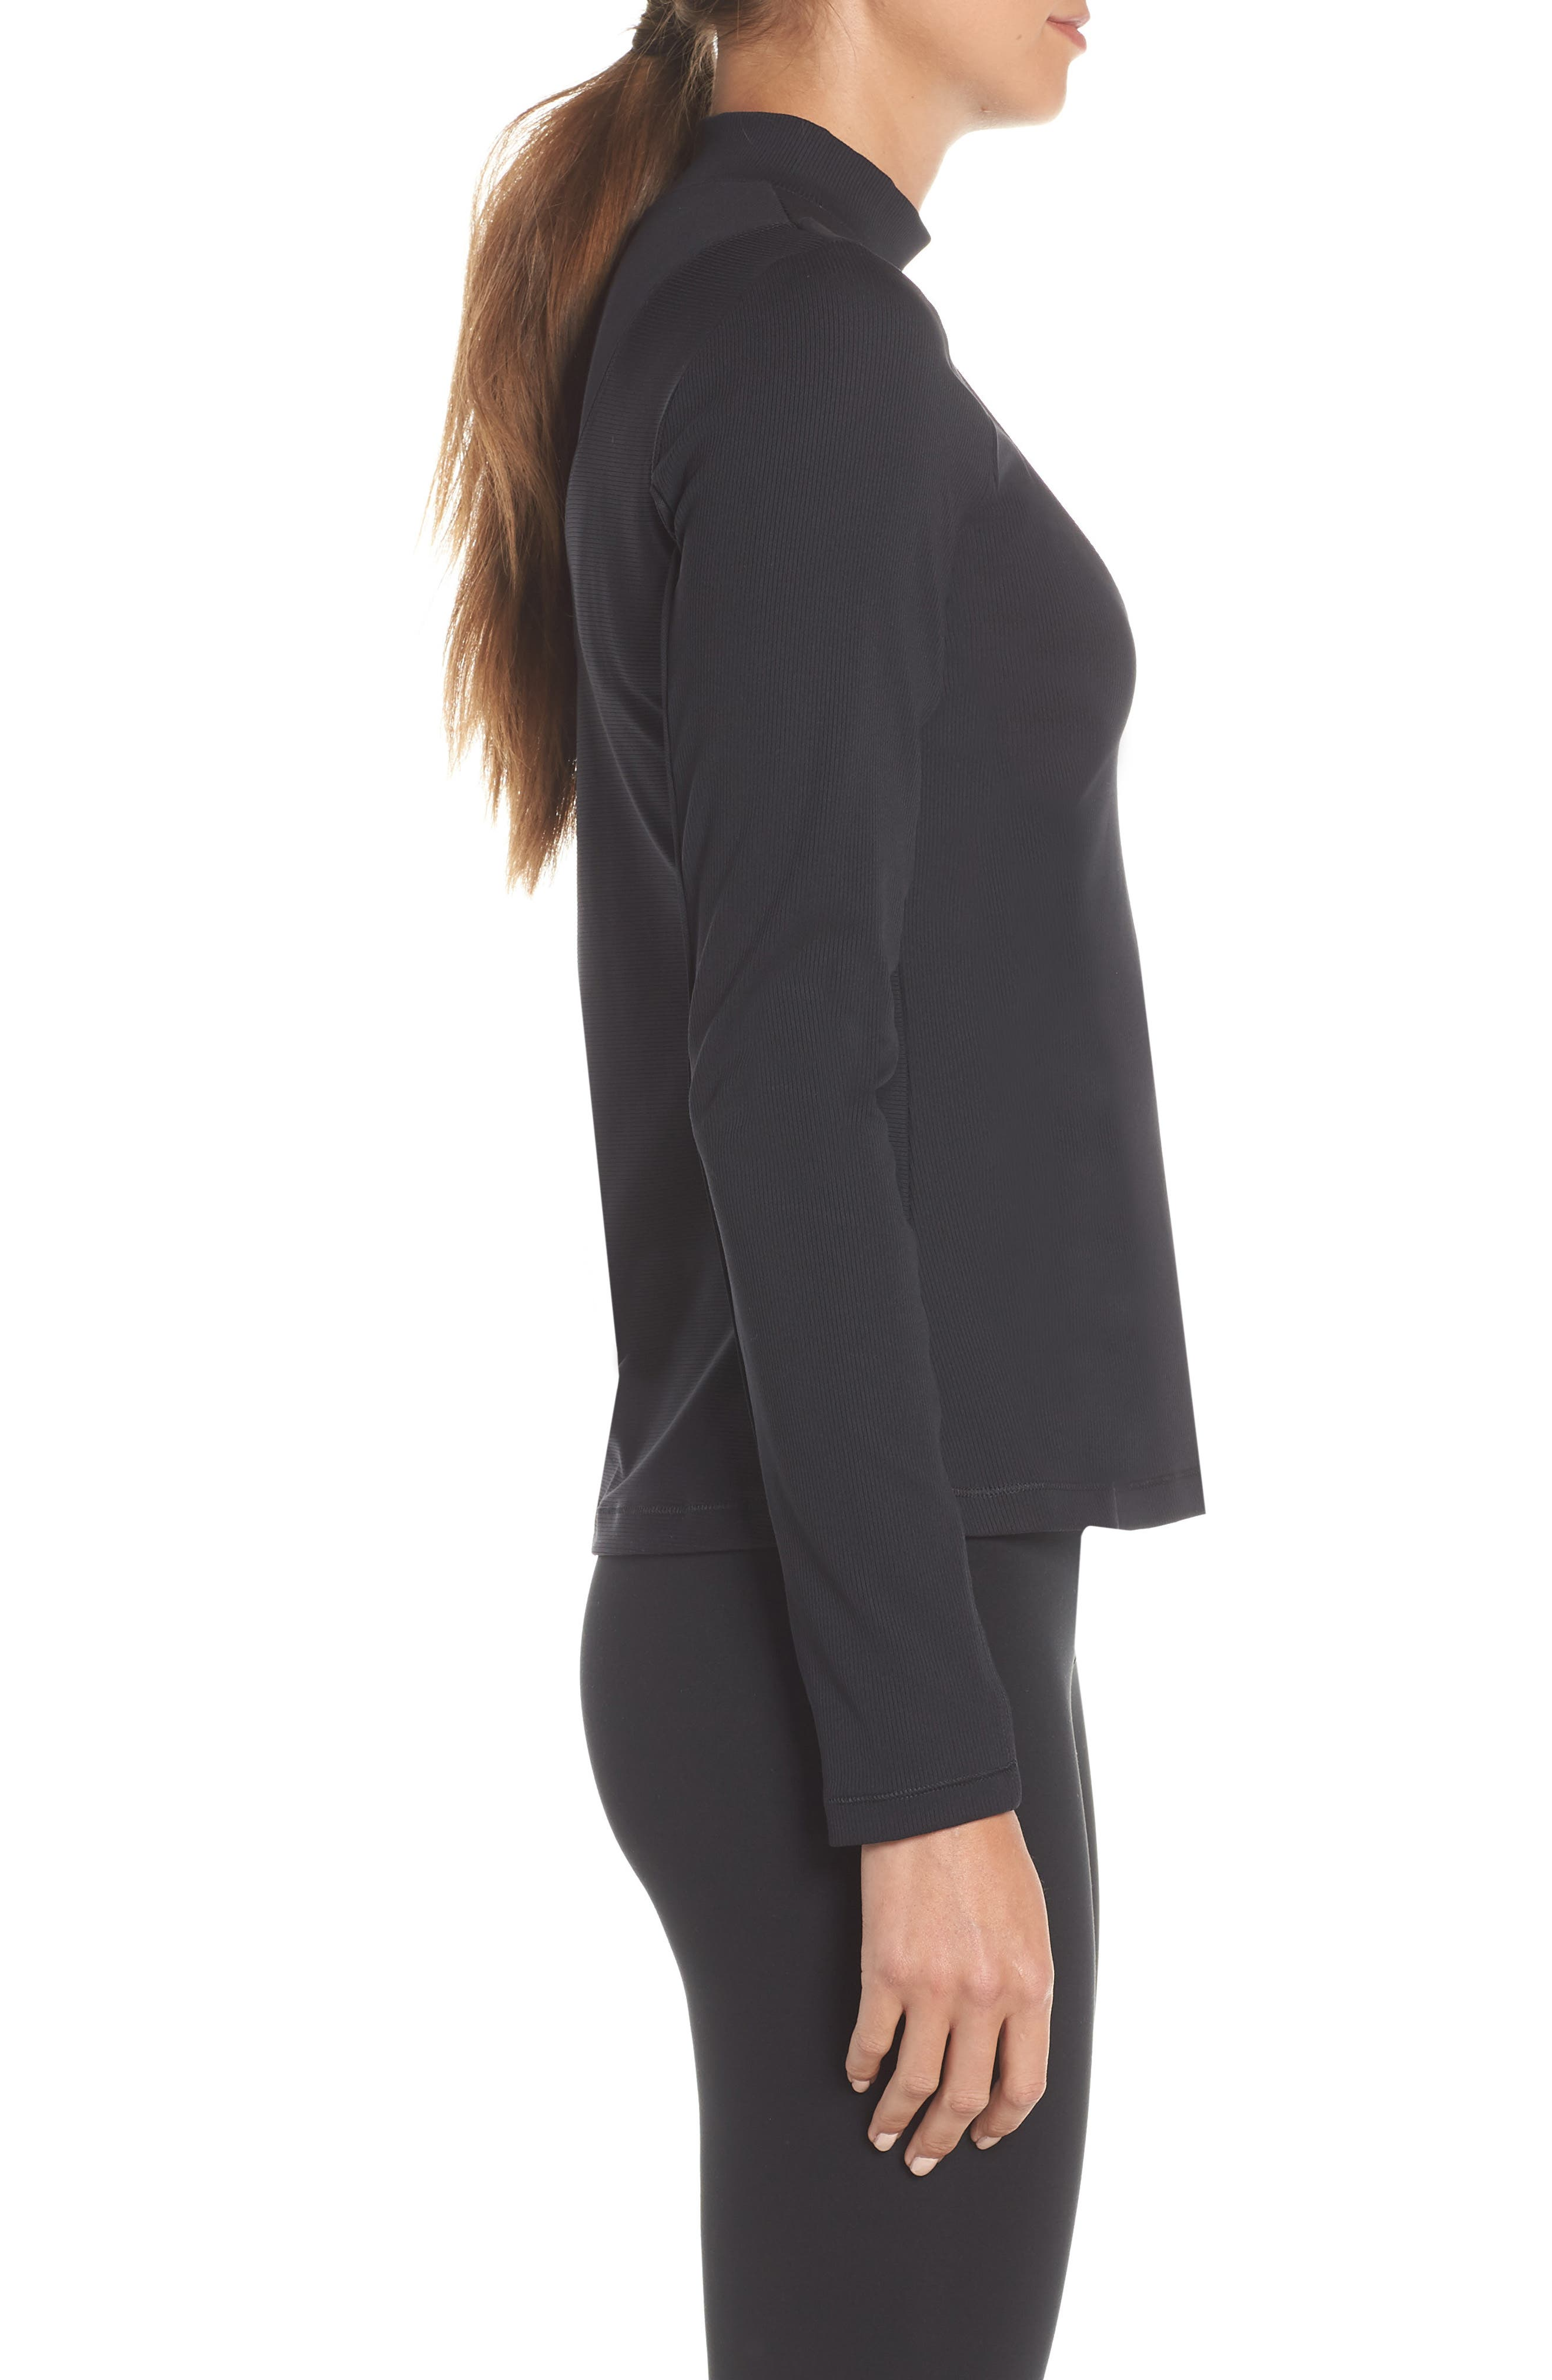 The Nike Pro HyperCool Women's Long Sleeve Ribbed Top,                             Alternate thumbnail 3, color,                             BLACK/ CLEAR